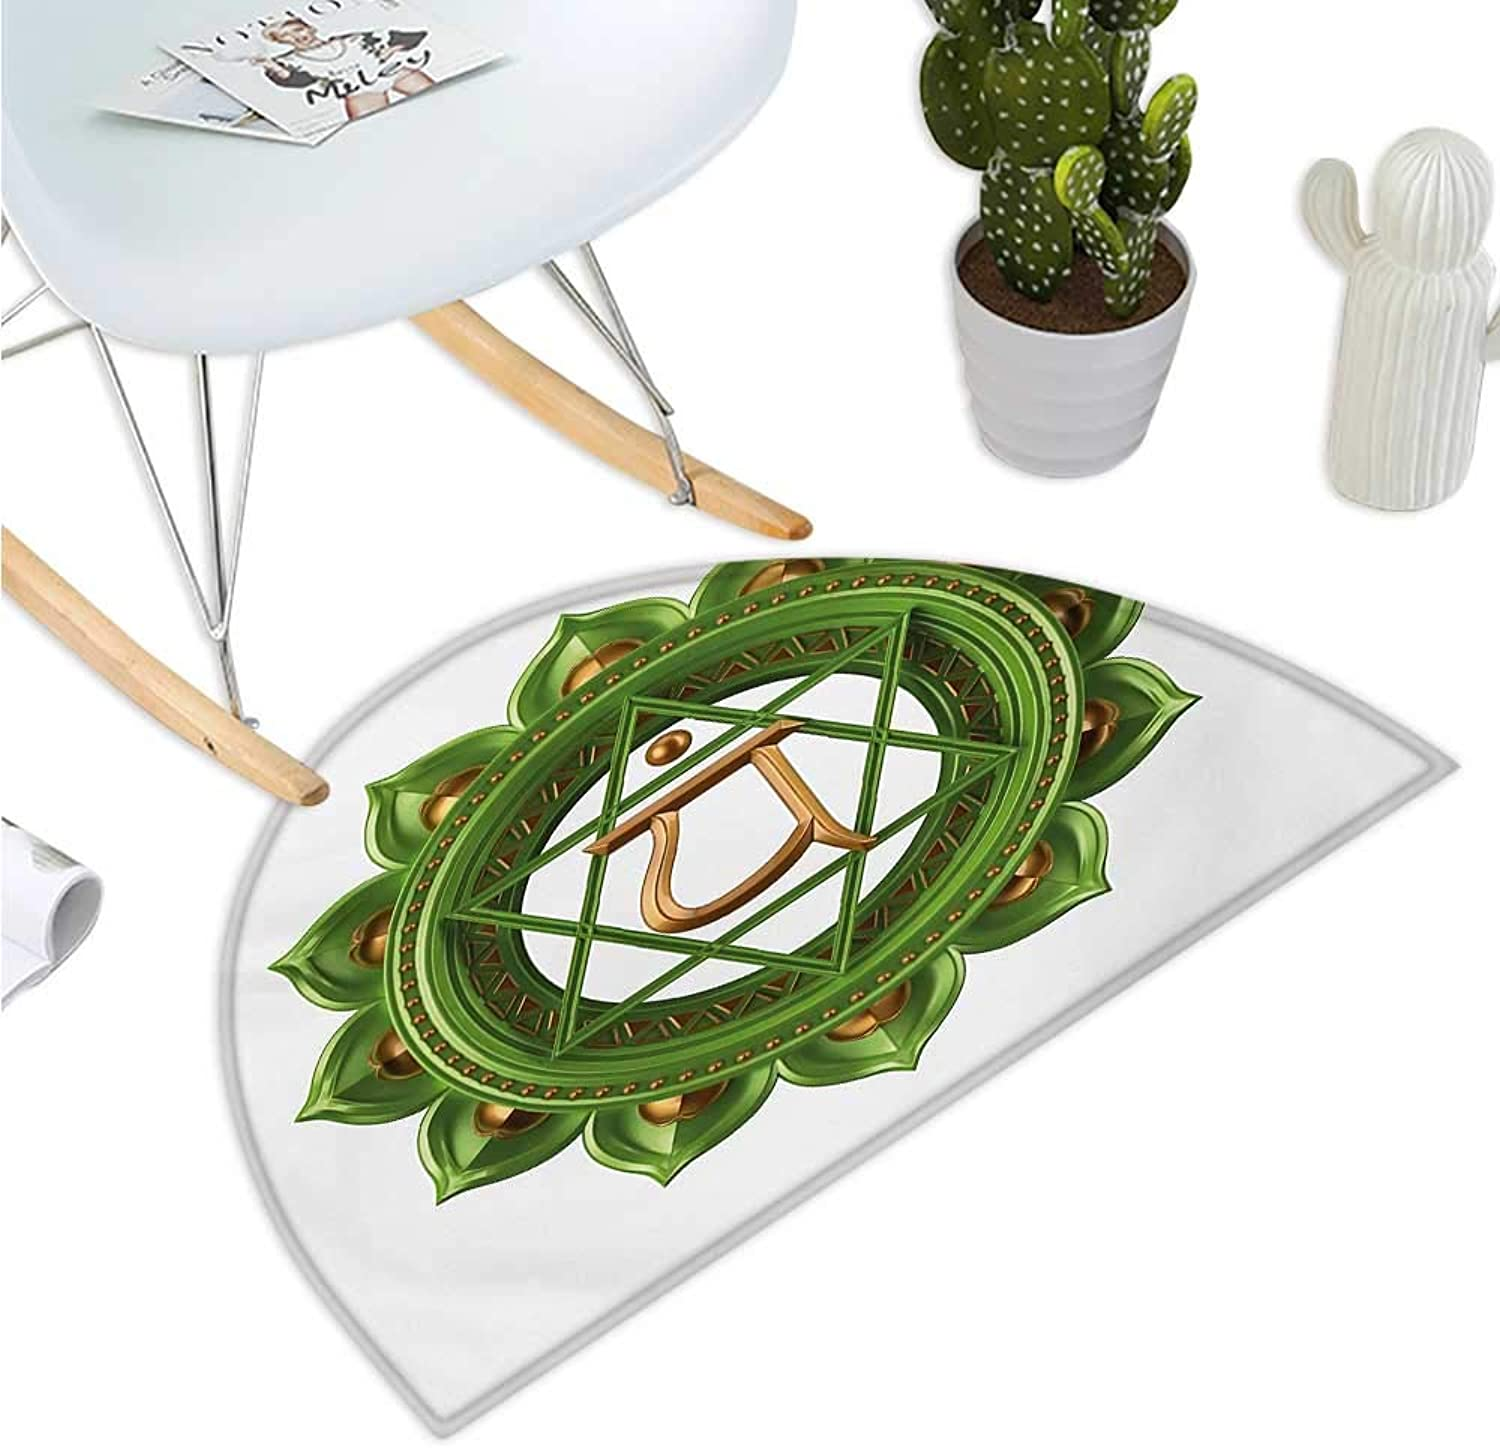 Chakra Semicircular Cushion Circular Oriental Style Earth Core Form Ancient Balance and Harmony in Cosmos Theme Halfmoon doormats H 43.3  xD 64.9  Green gold